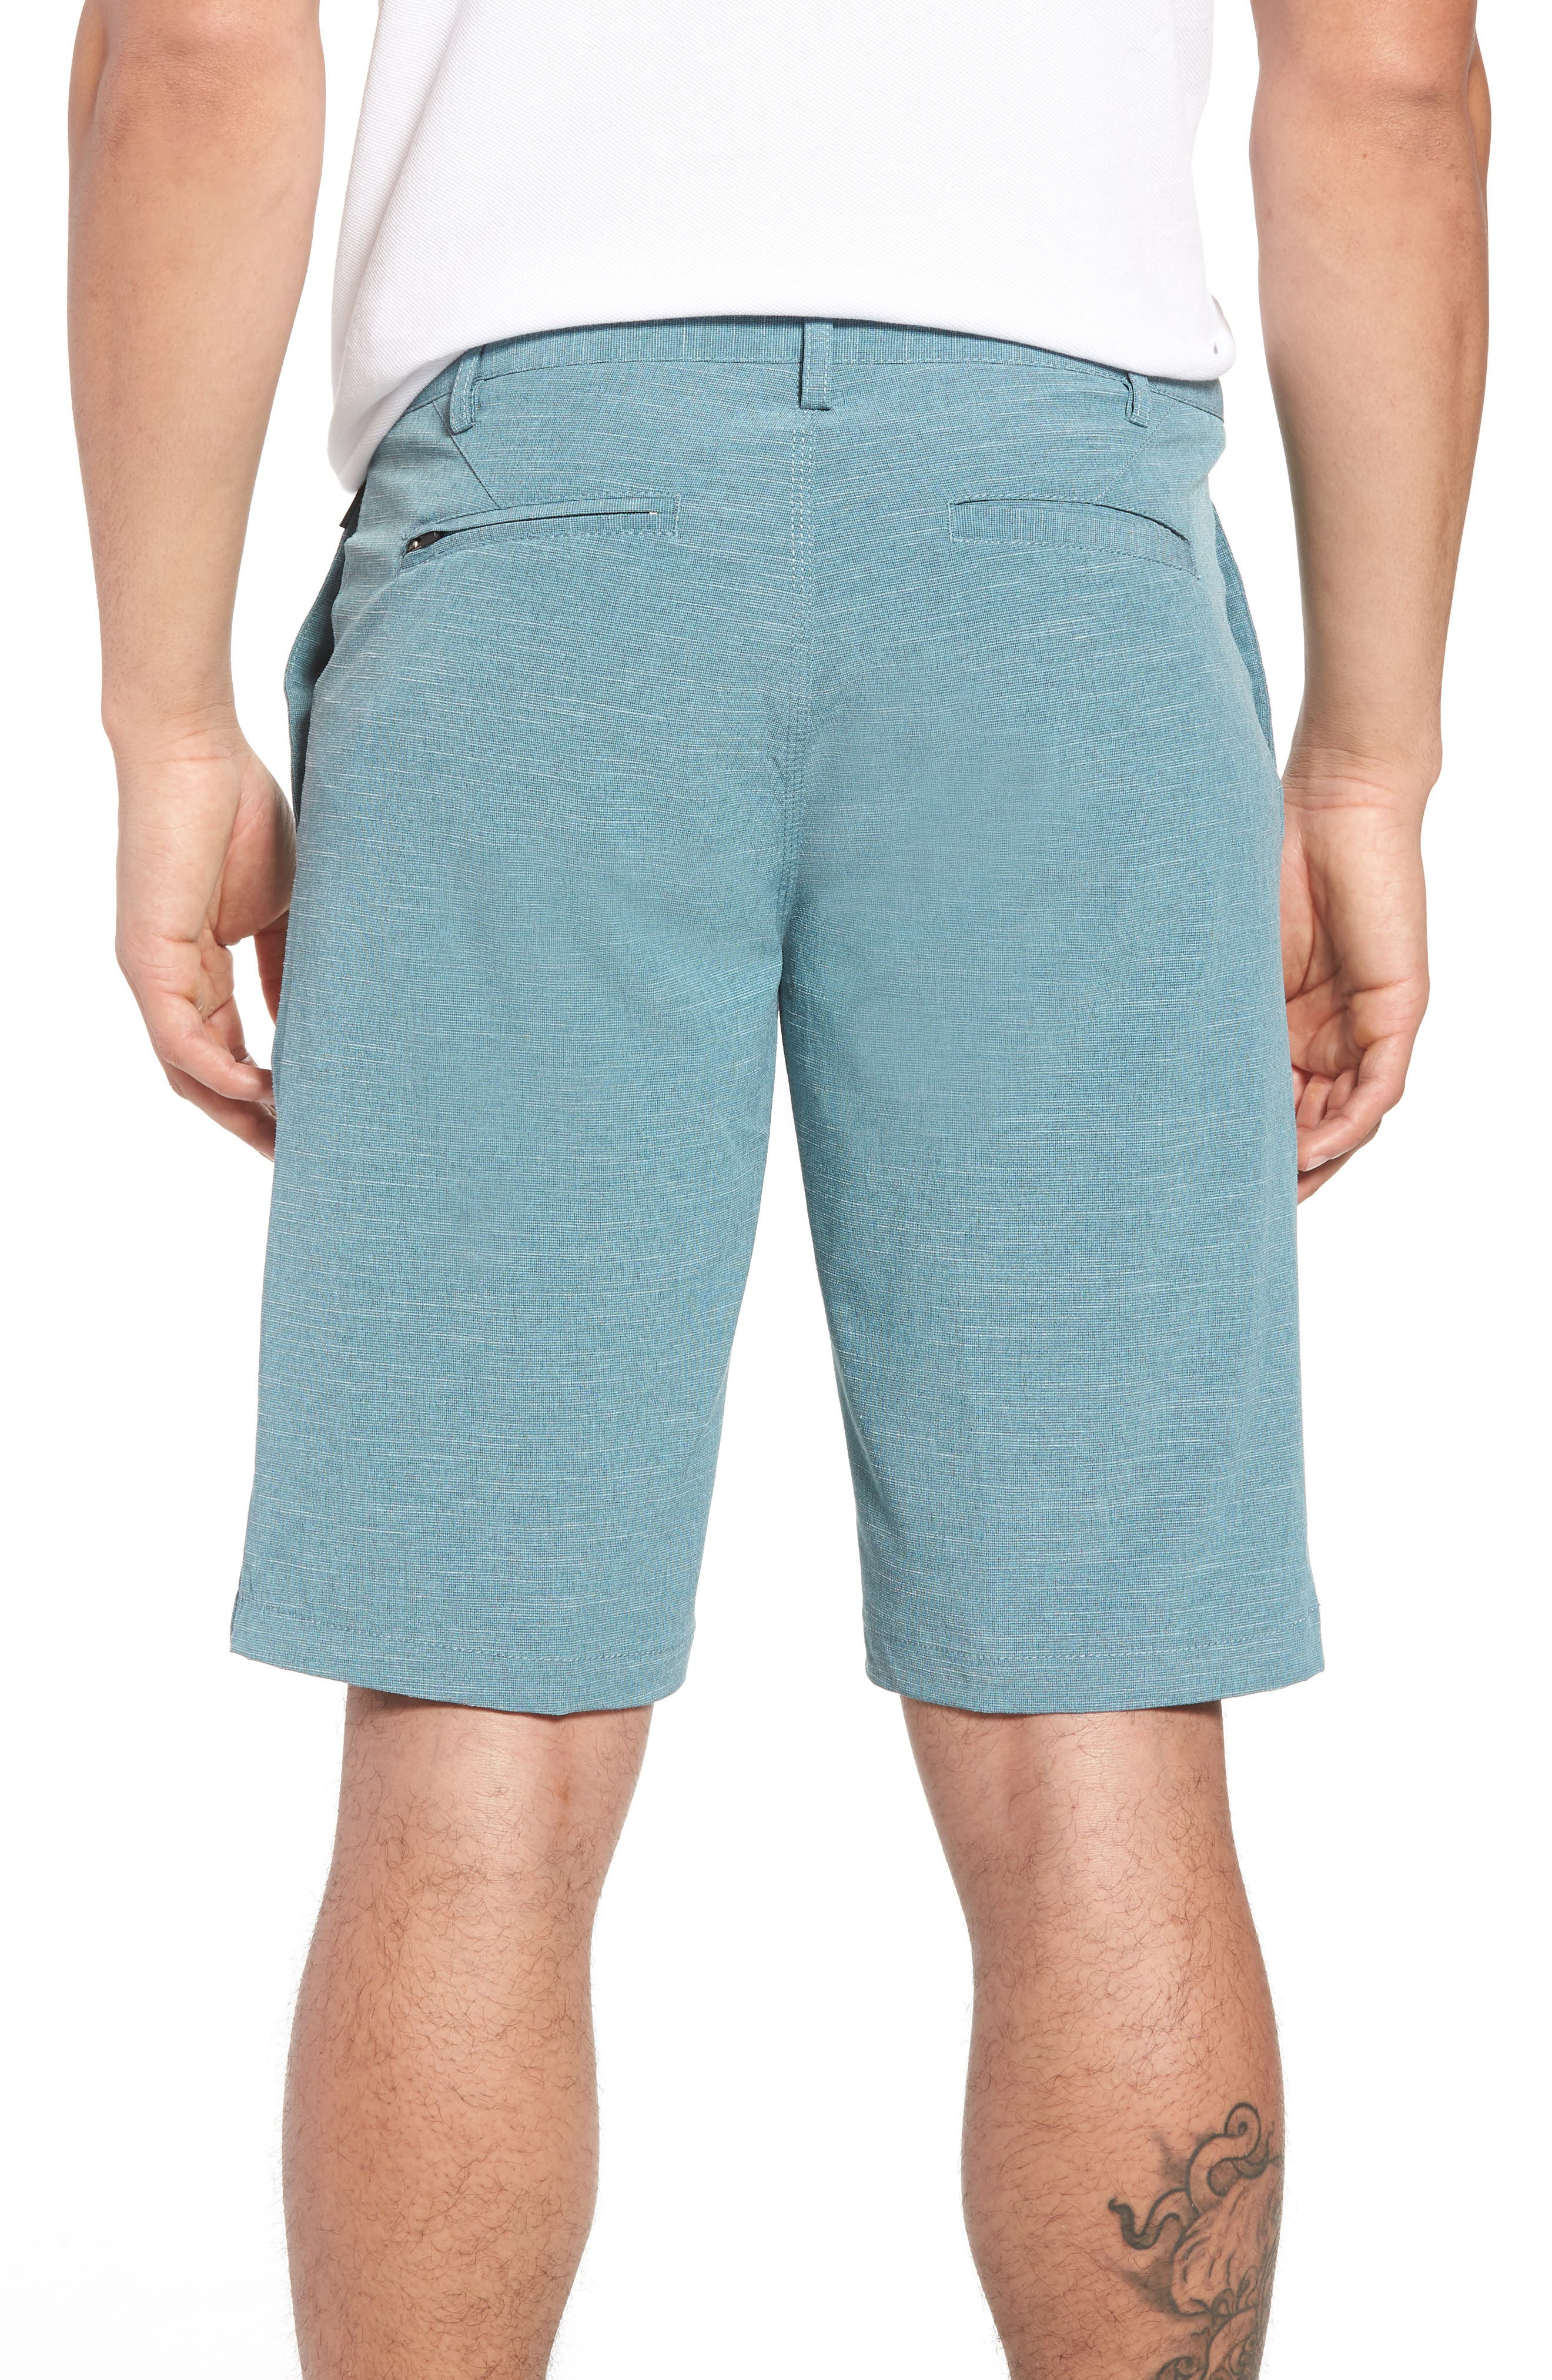 Existence Stretch Shorts,                             Alternate thumbnail 6, color,